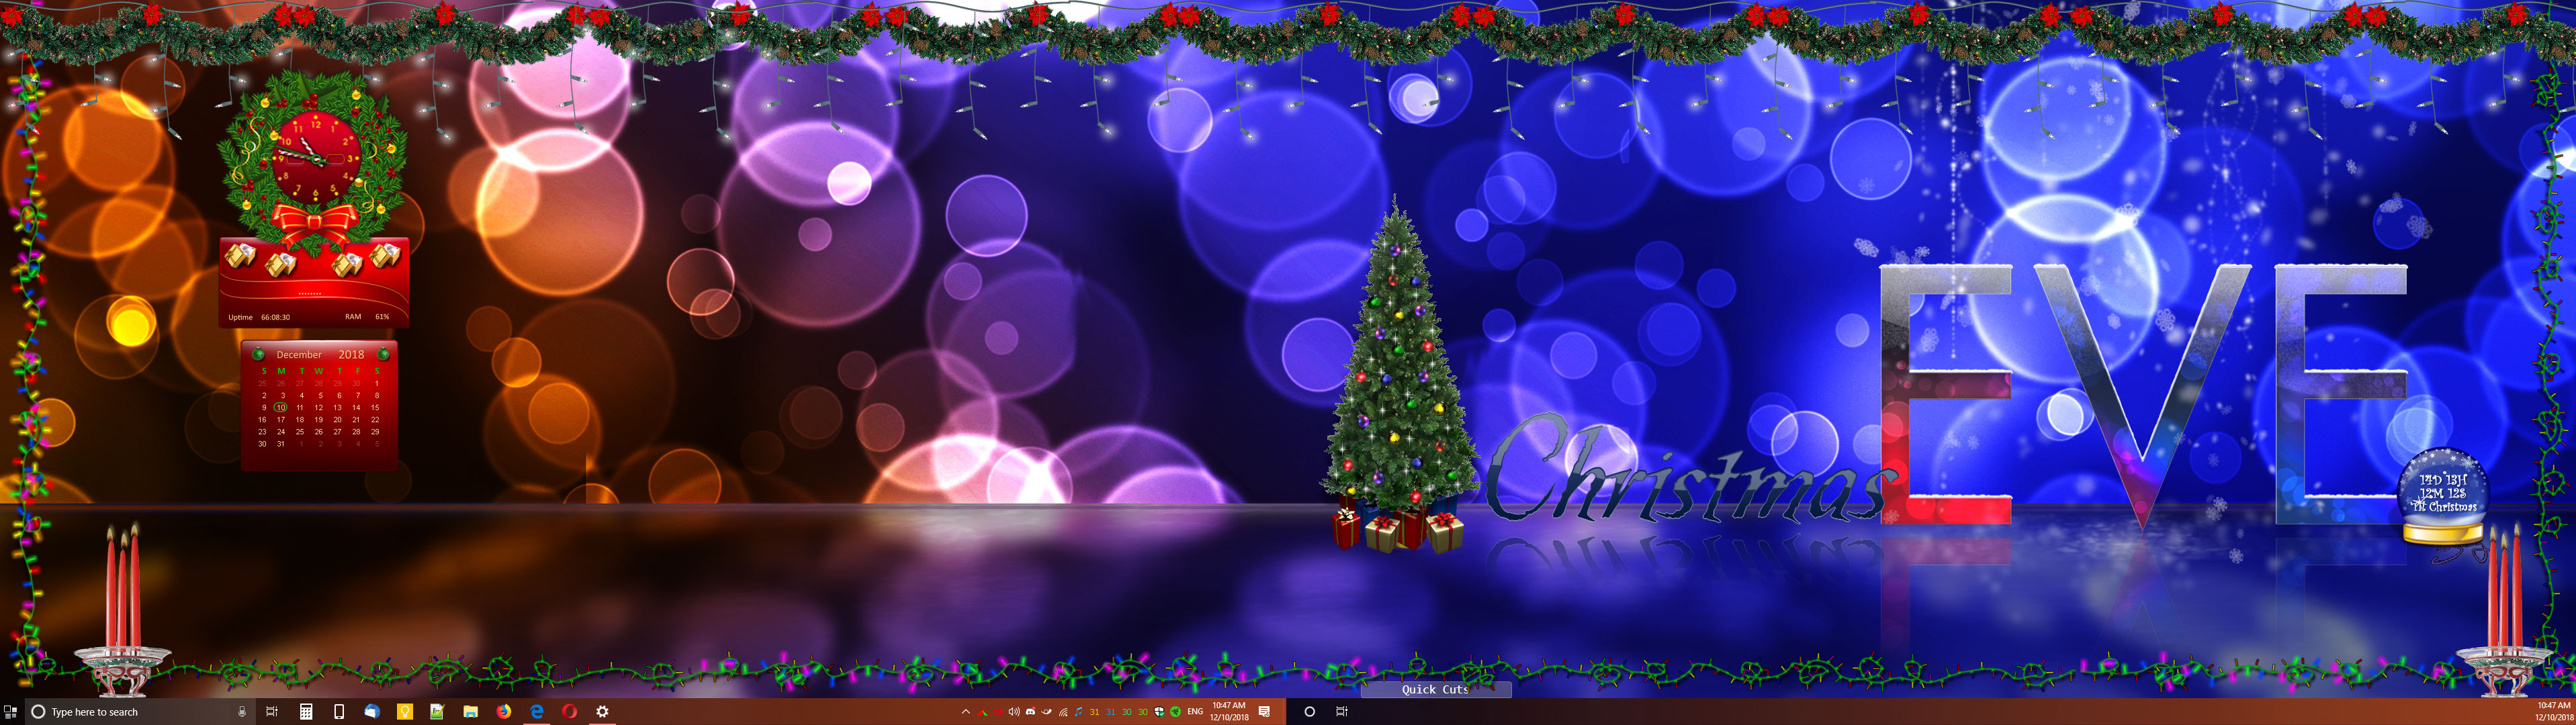 Christmas DesktopX 2018